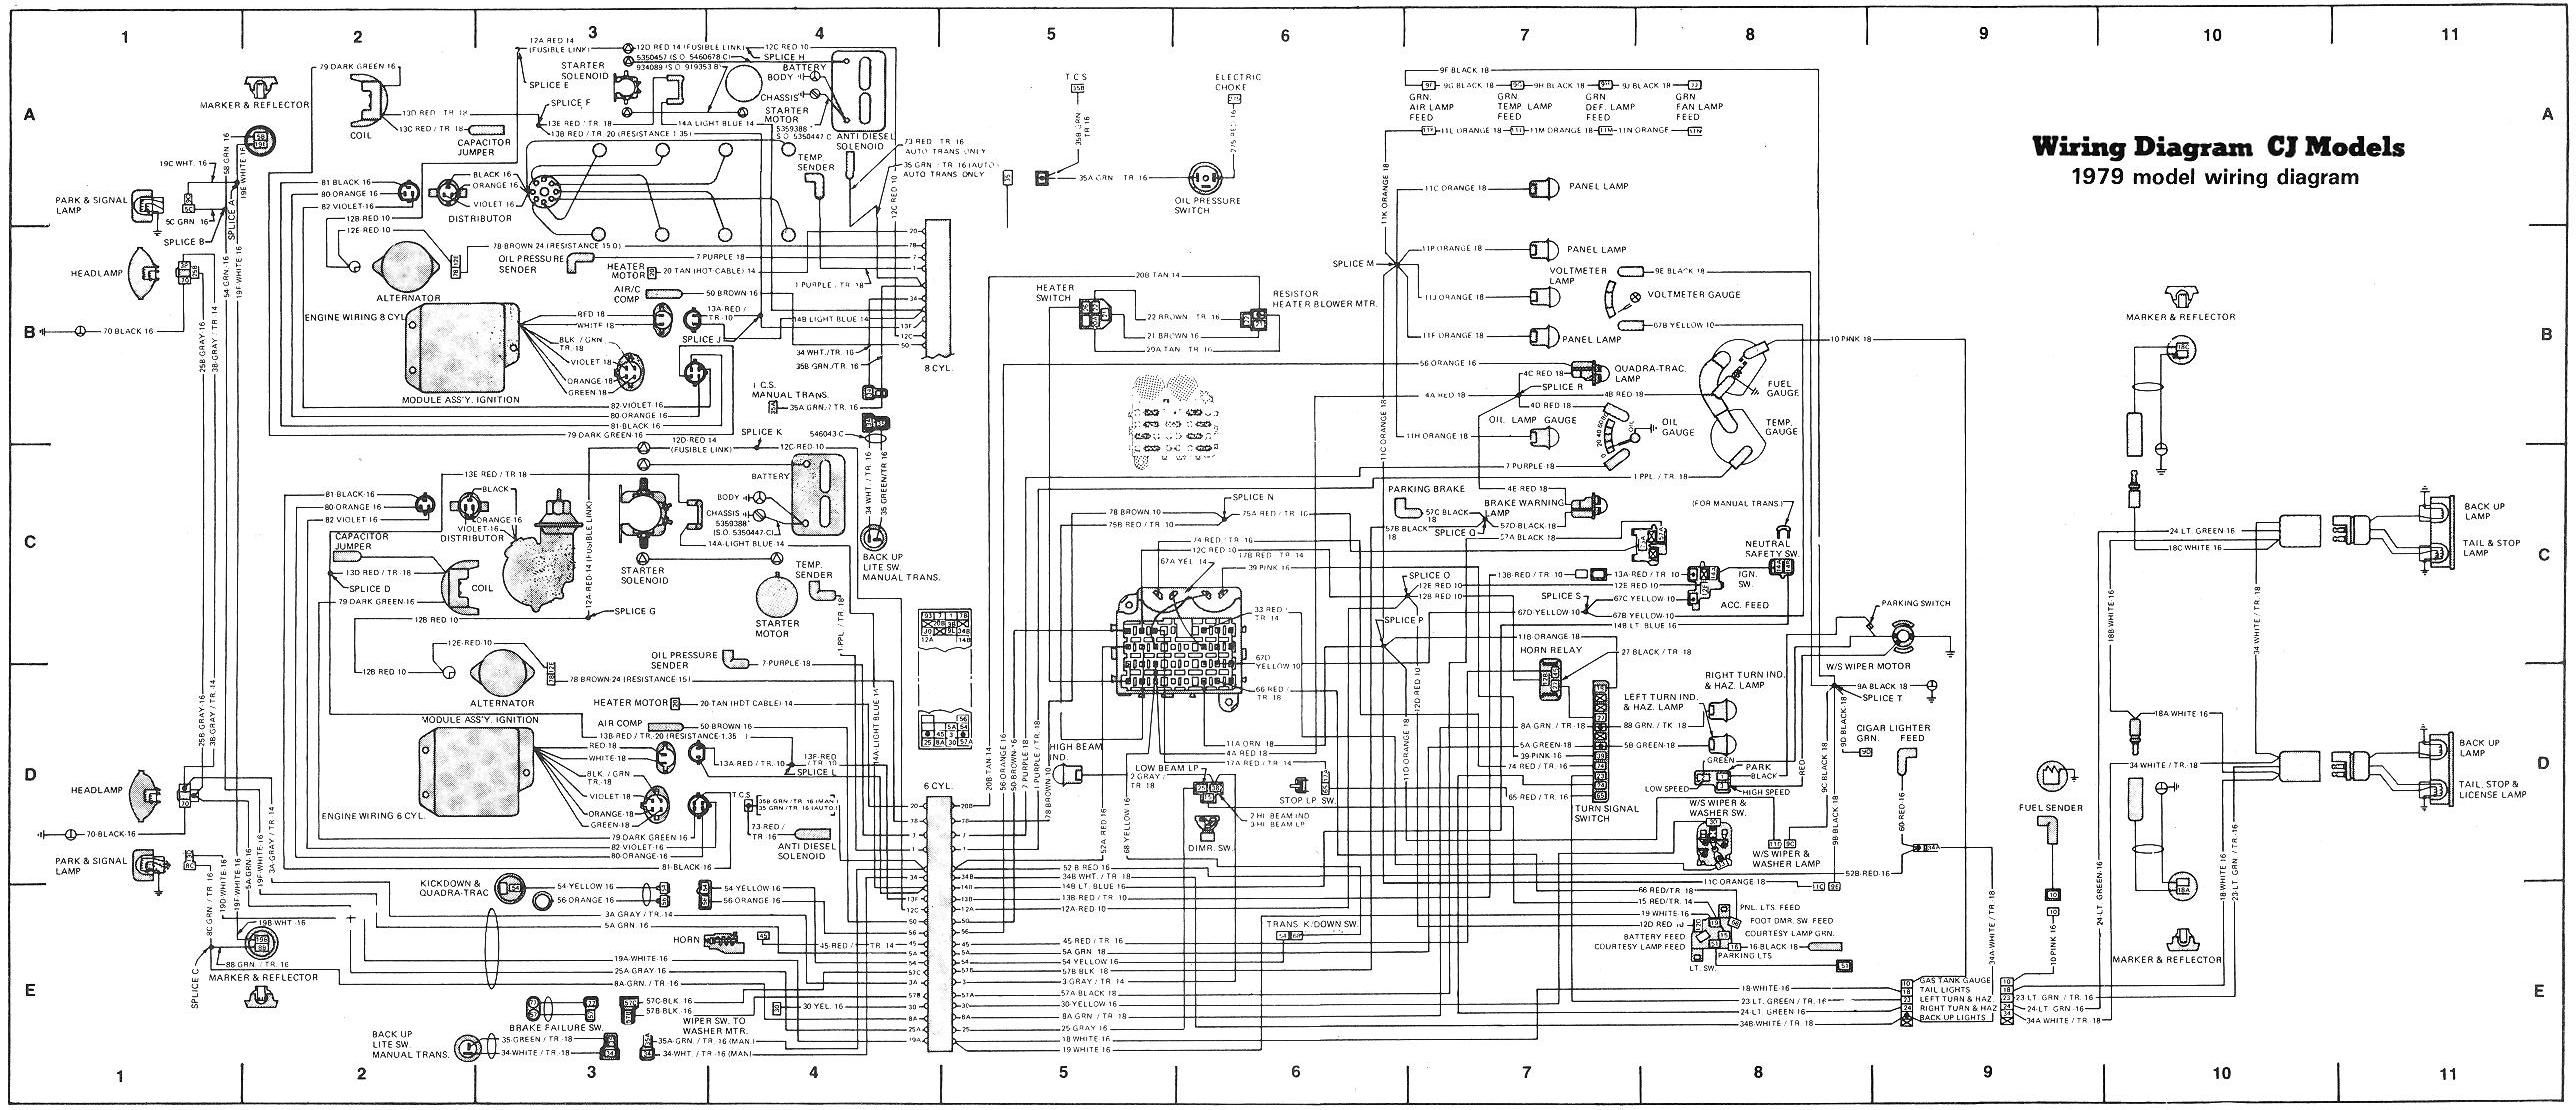 saxon wiring diagram jeep wrangler wiring jeep tj ls conversion wiring harness jeep jeep jk wiring diagram wiring diagrams